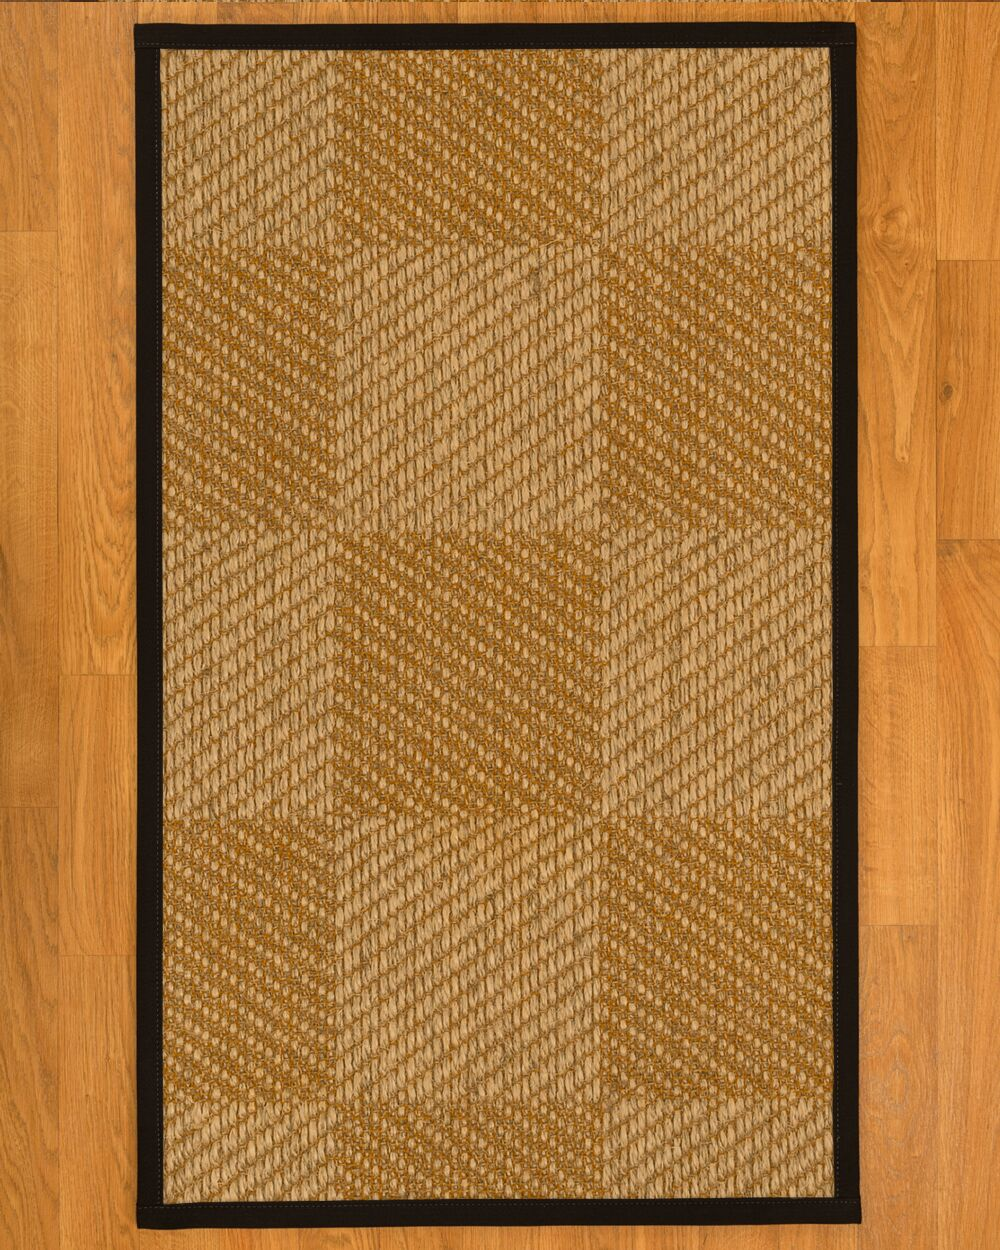 Adley Handwoven Flatweave Beige Area Rug Rug Size: Rectangle 4' x 6'